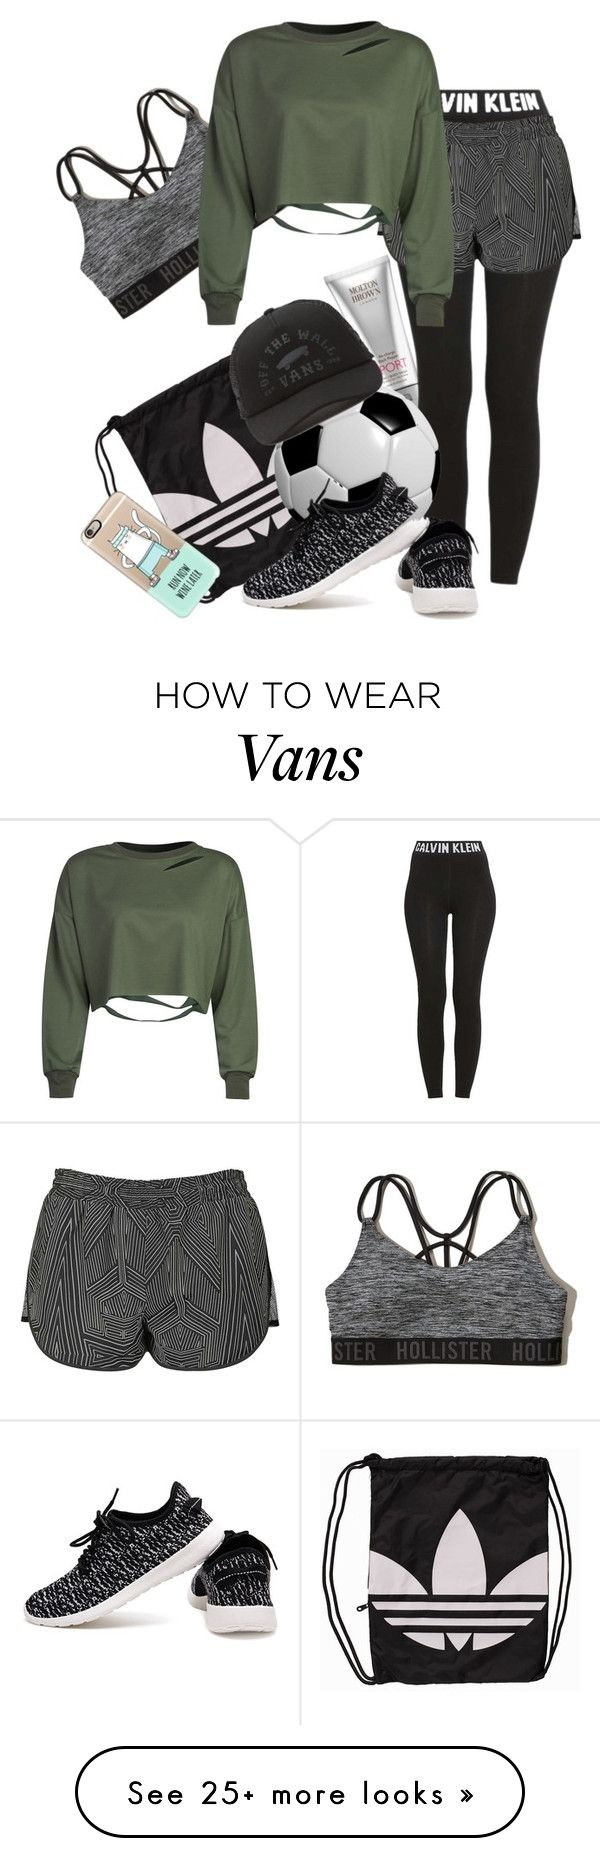 """Untitled #921"" by soosoali on Polyvore featuring Molton Brown, adidas Originals, Hollister Co., Calvin Klein, Topshop, WithChic, Vans and Casetify"